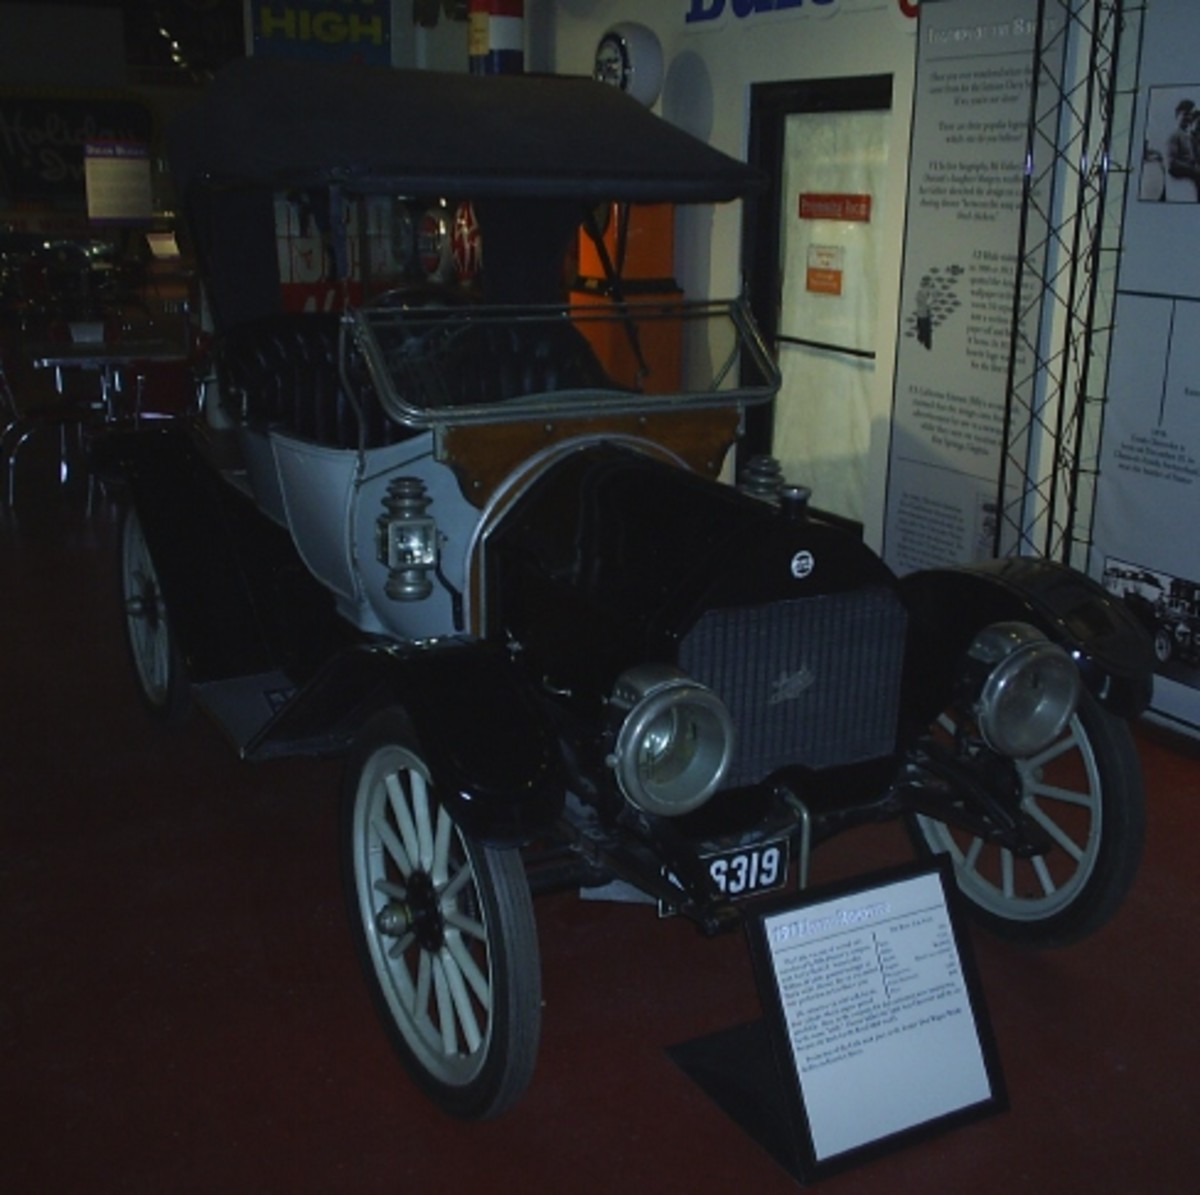 A 1912 Little roadster in the Chevrolet display. Little was built in Flint, Mich., under William Crapo Durant's supervision after he was first ousted from General Motors.